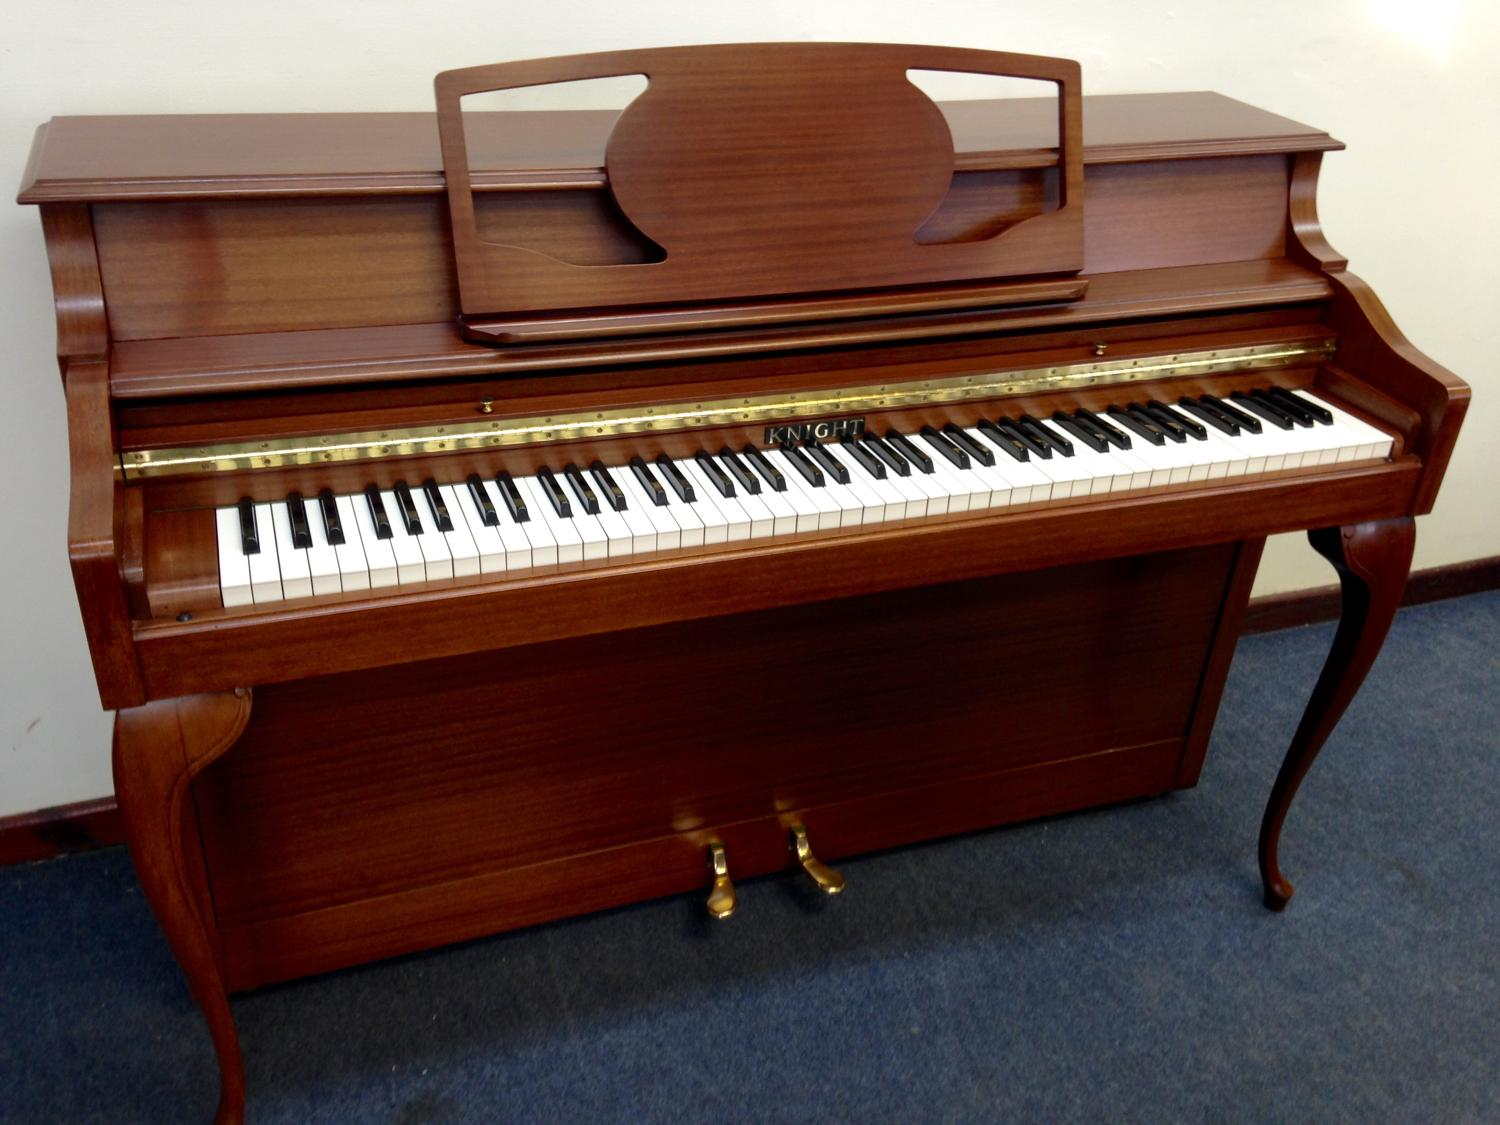 Knight K15 modern upright piano for sale